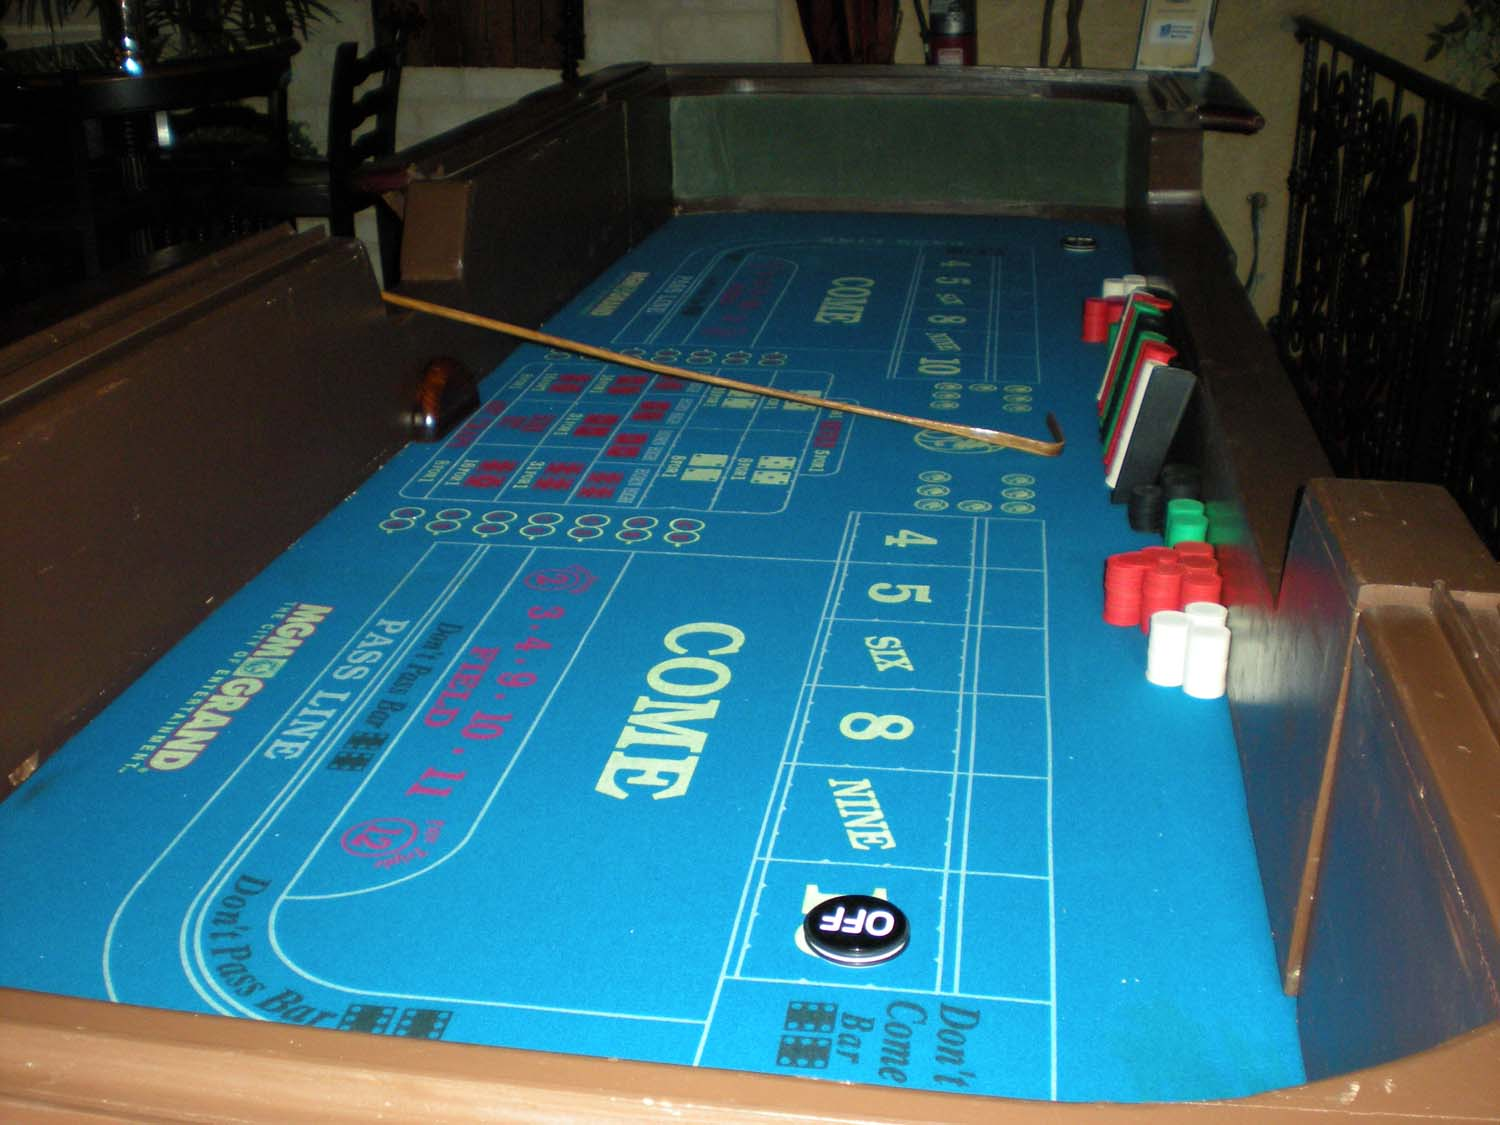 Playing craps at home